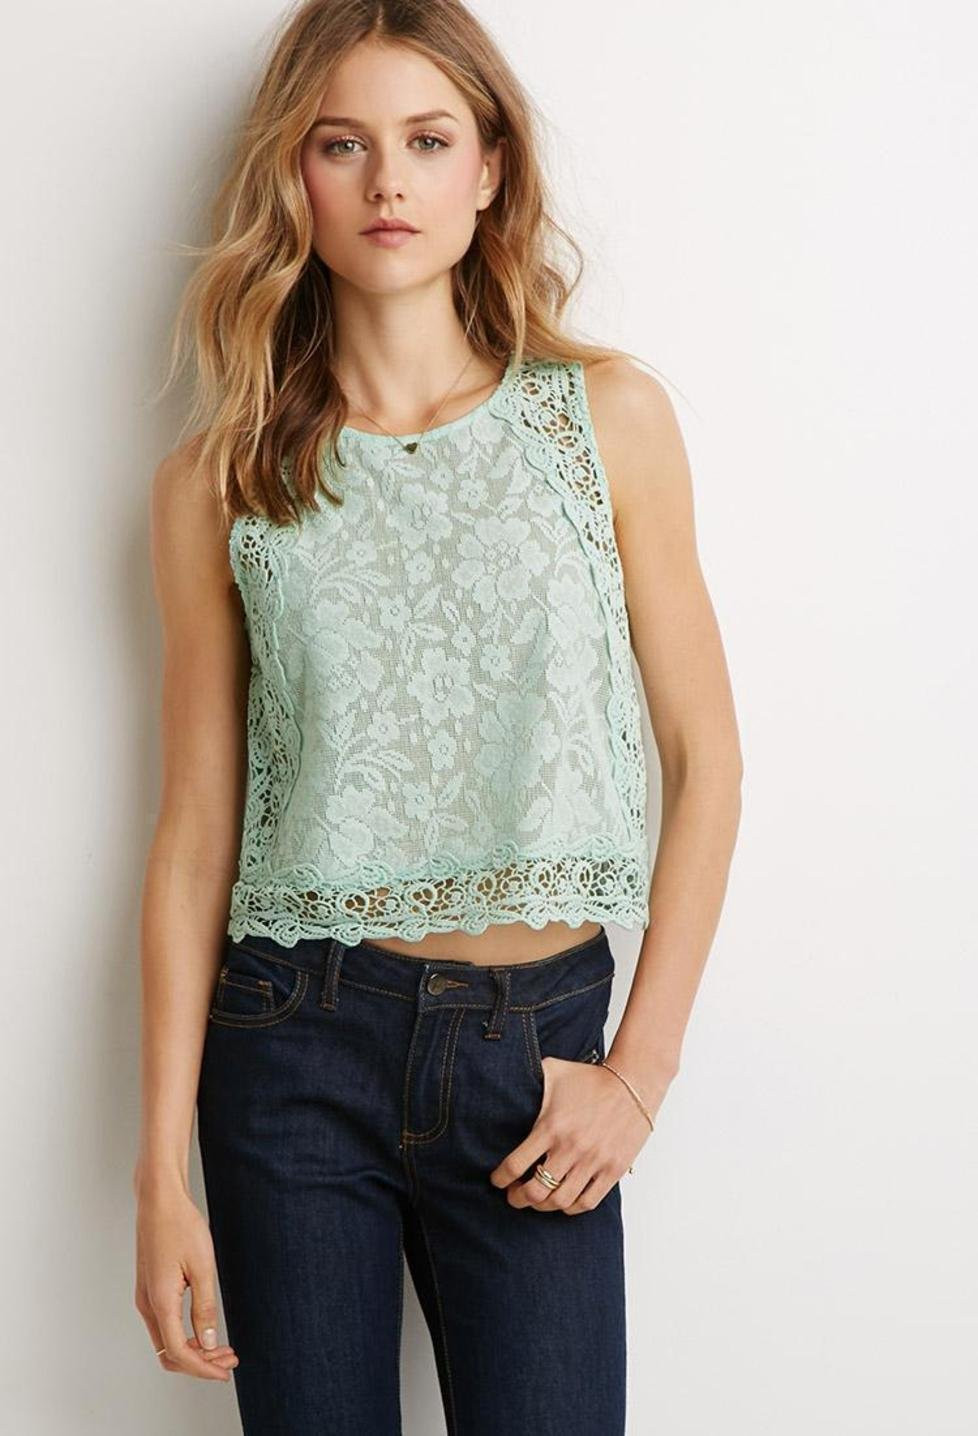 Beautiful forever 21 Mixed Floral Crochet top Crochet tops forever 21 Of Amazing 46 Pics Crochet tops forever 21